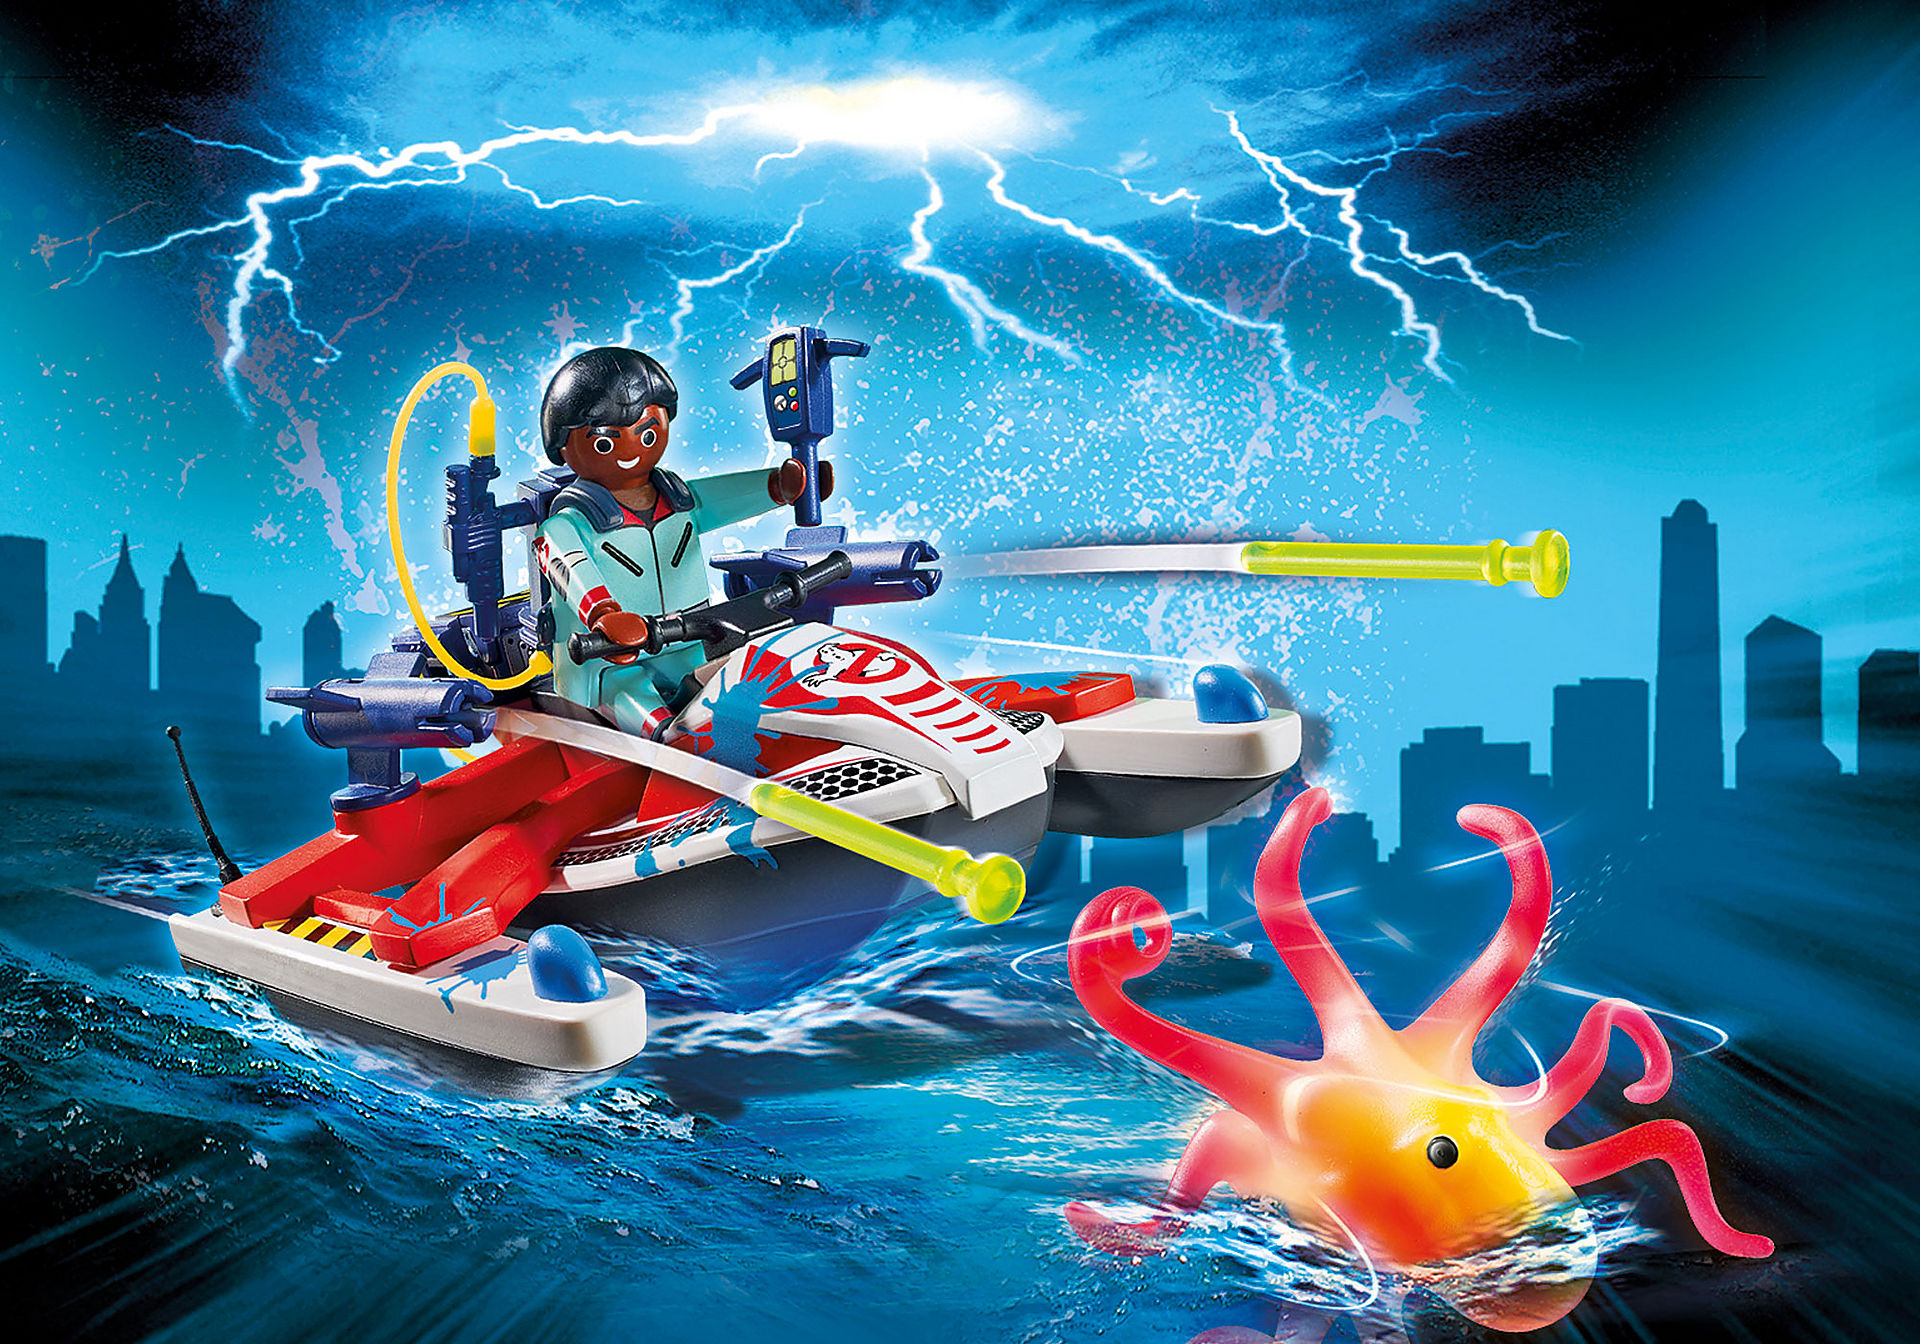 http://media.playmobil.com/i/playmobil/9387_product_detail/Zeddemore met waterscooter